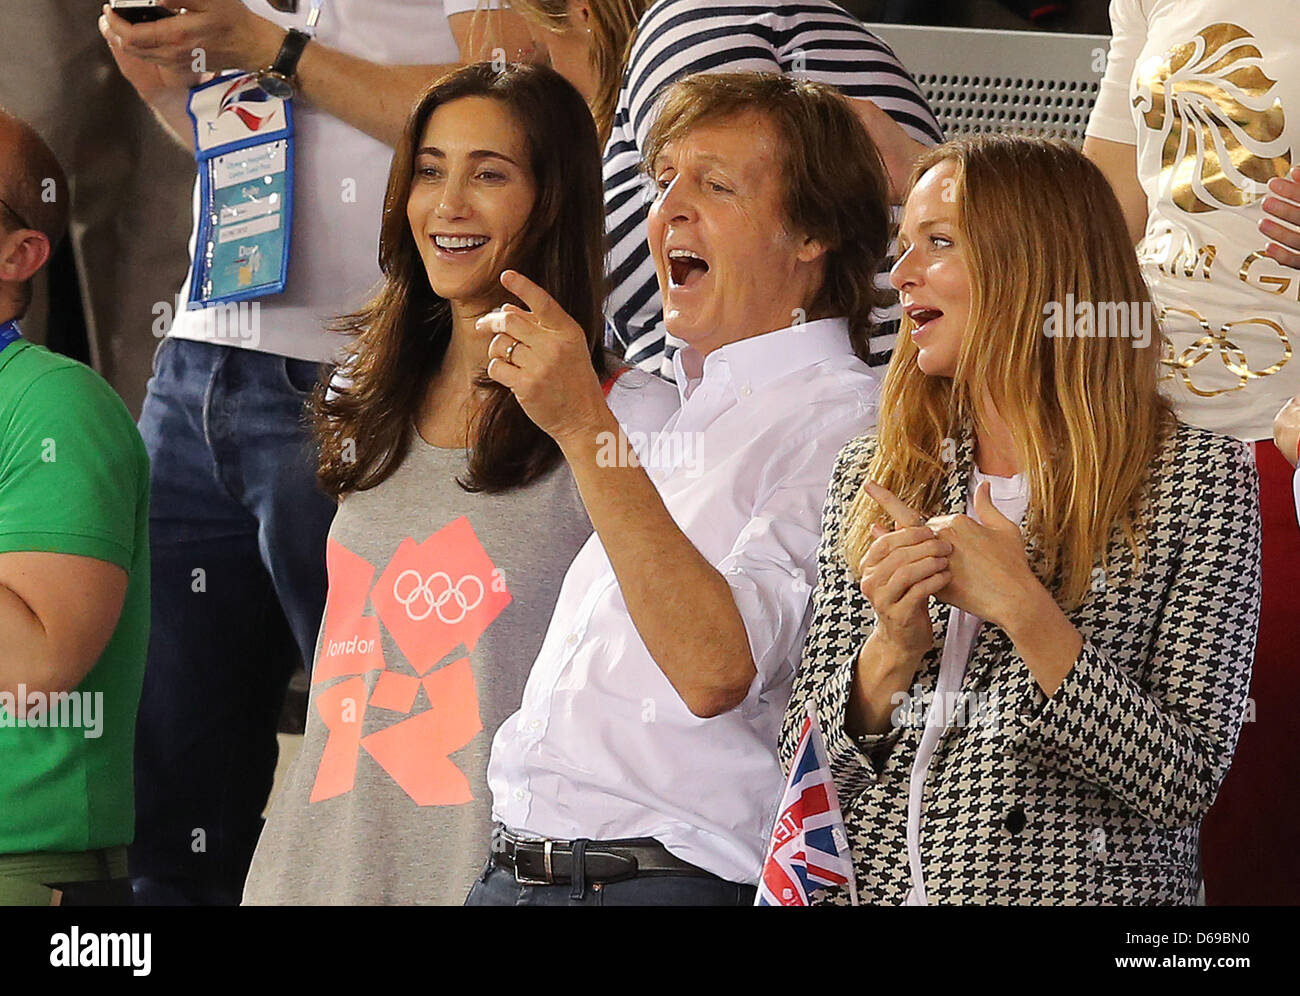 Sir Paul McCartney C His Wife Nancy Shevell L And Daughter Fashion Designer Stella R Are Attending The Cycling Event At Veldorome